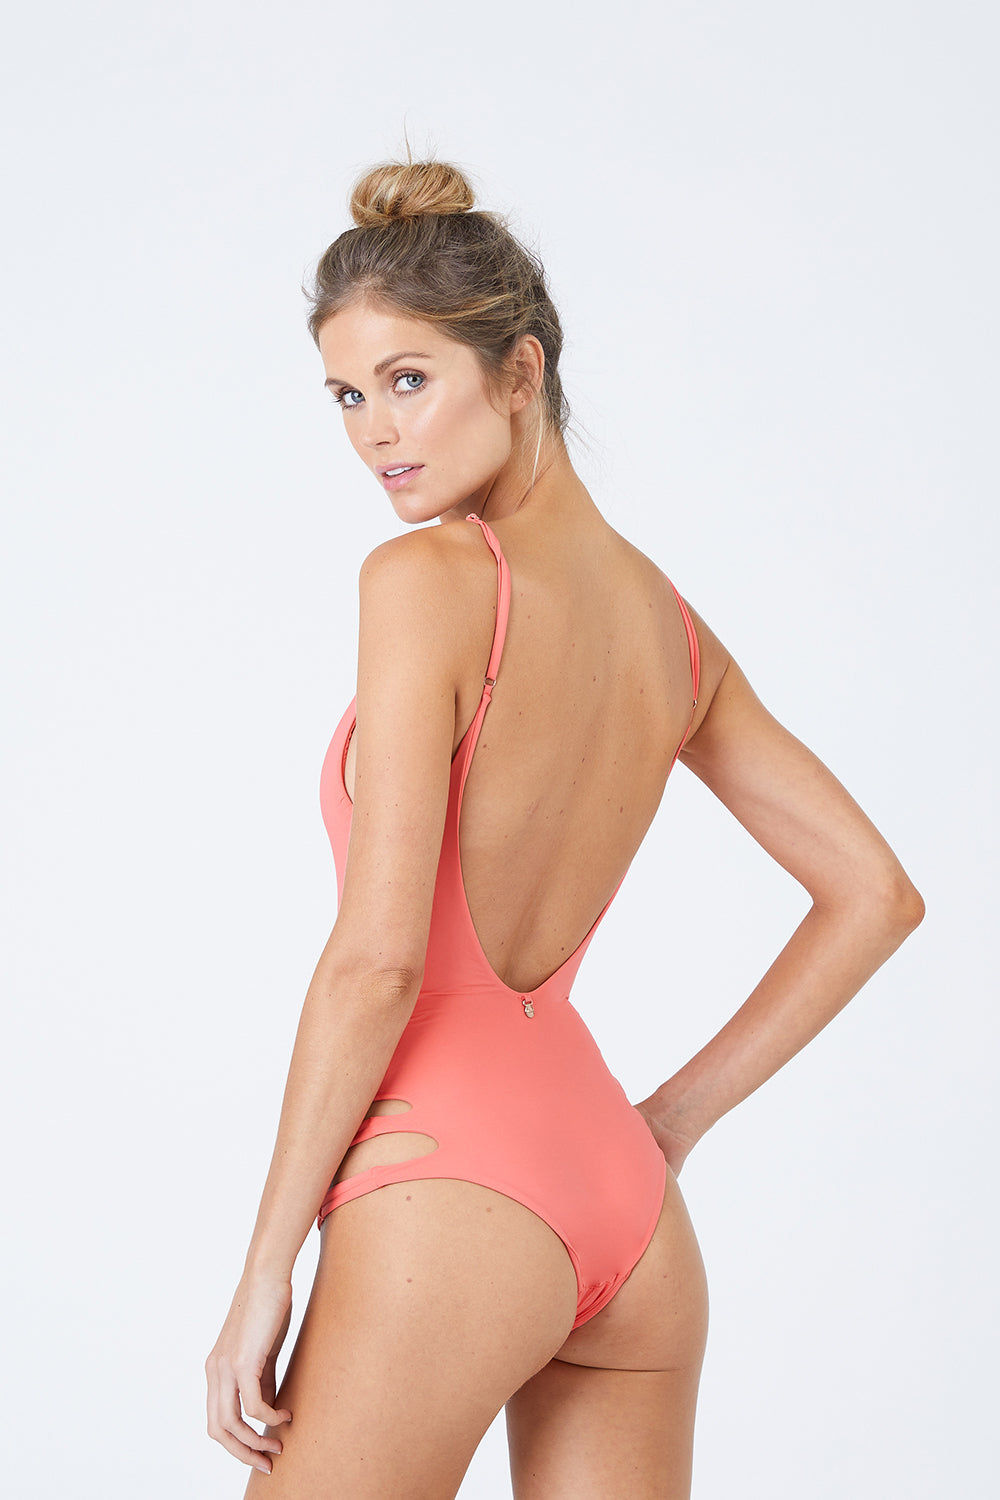 MALAI Sun Crater Side Cut Outs One Piece Swimsuit - Tangerine One Piece | Tangerine| Malai Sun Crater Side Cut Outs One Piece Swimsuit - Tangerine. Features:   Deep V Neckline  Adjustable Shoulder Straps Side Cut Outs  Low Scoop Back  Cheeky-Moderate Coverage Front View